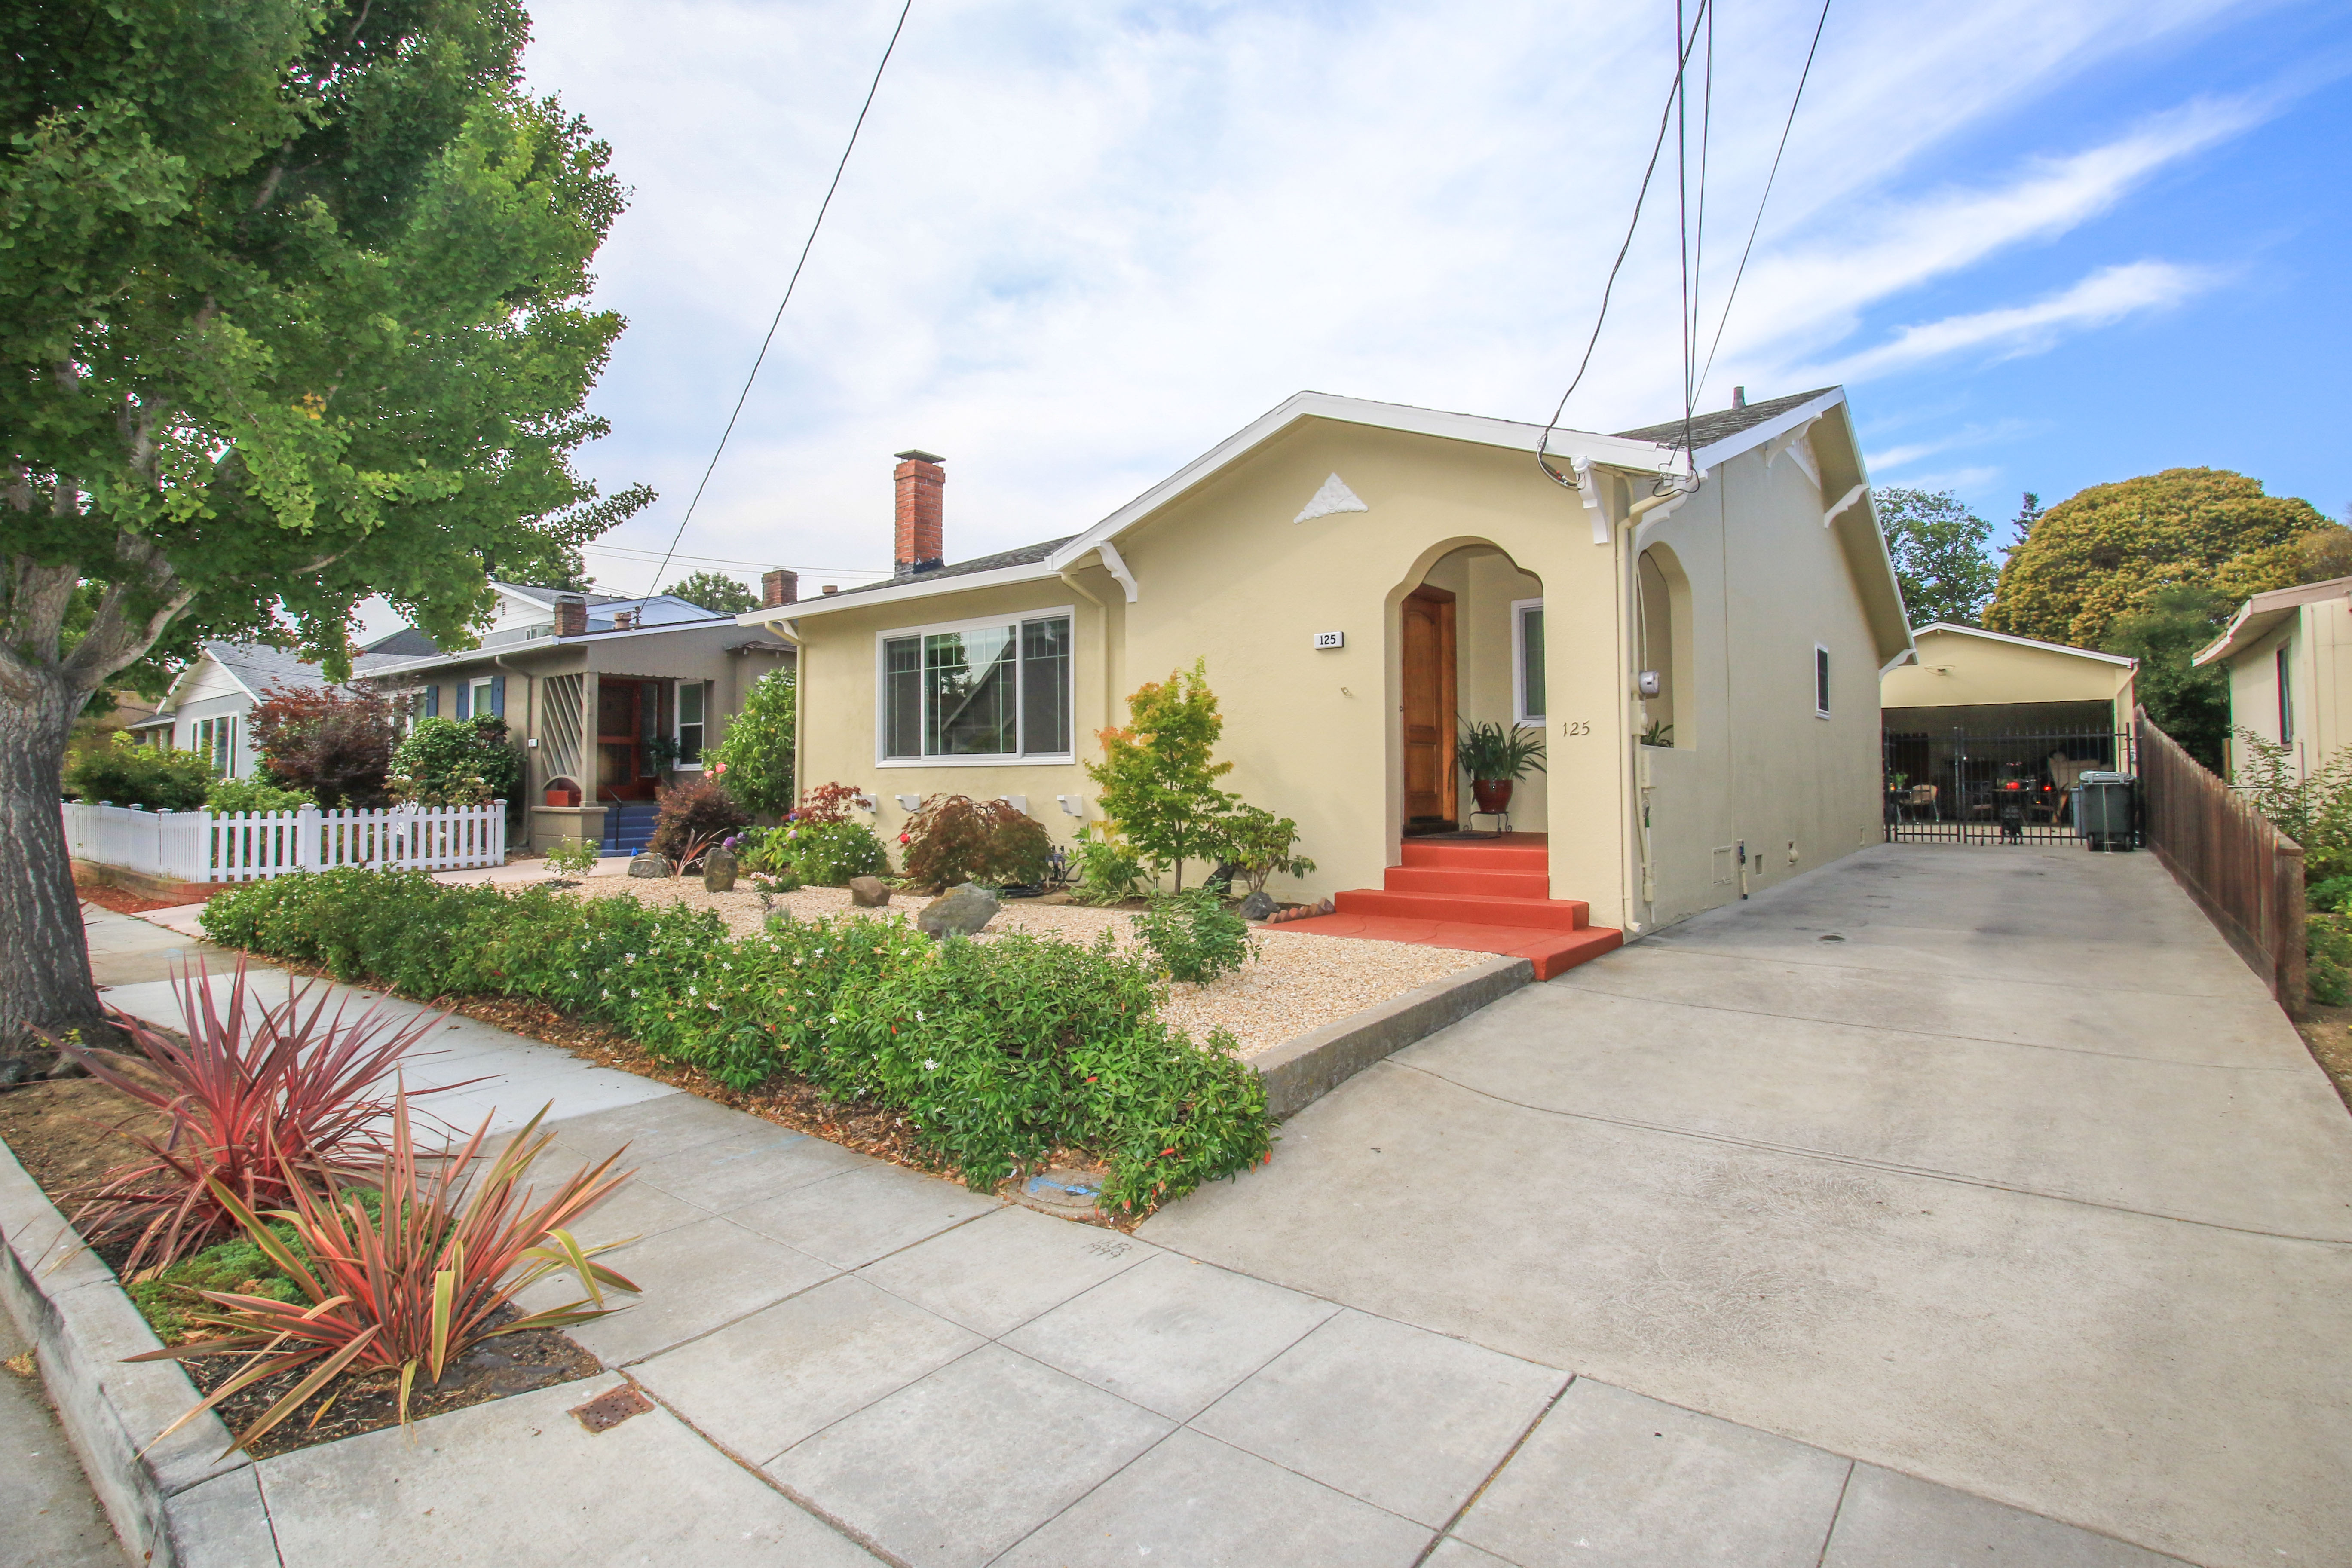 125 Channing Rd, Burlingame, CA 94010